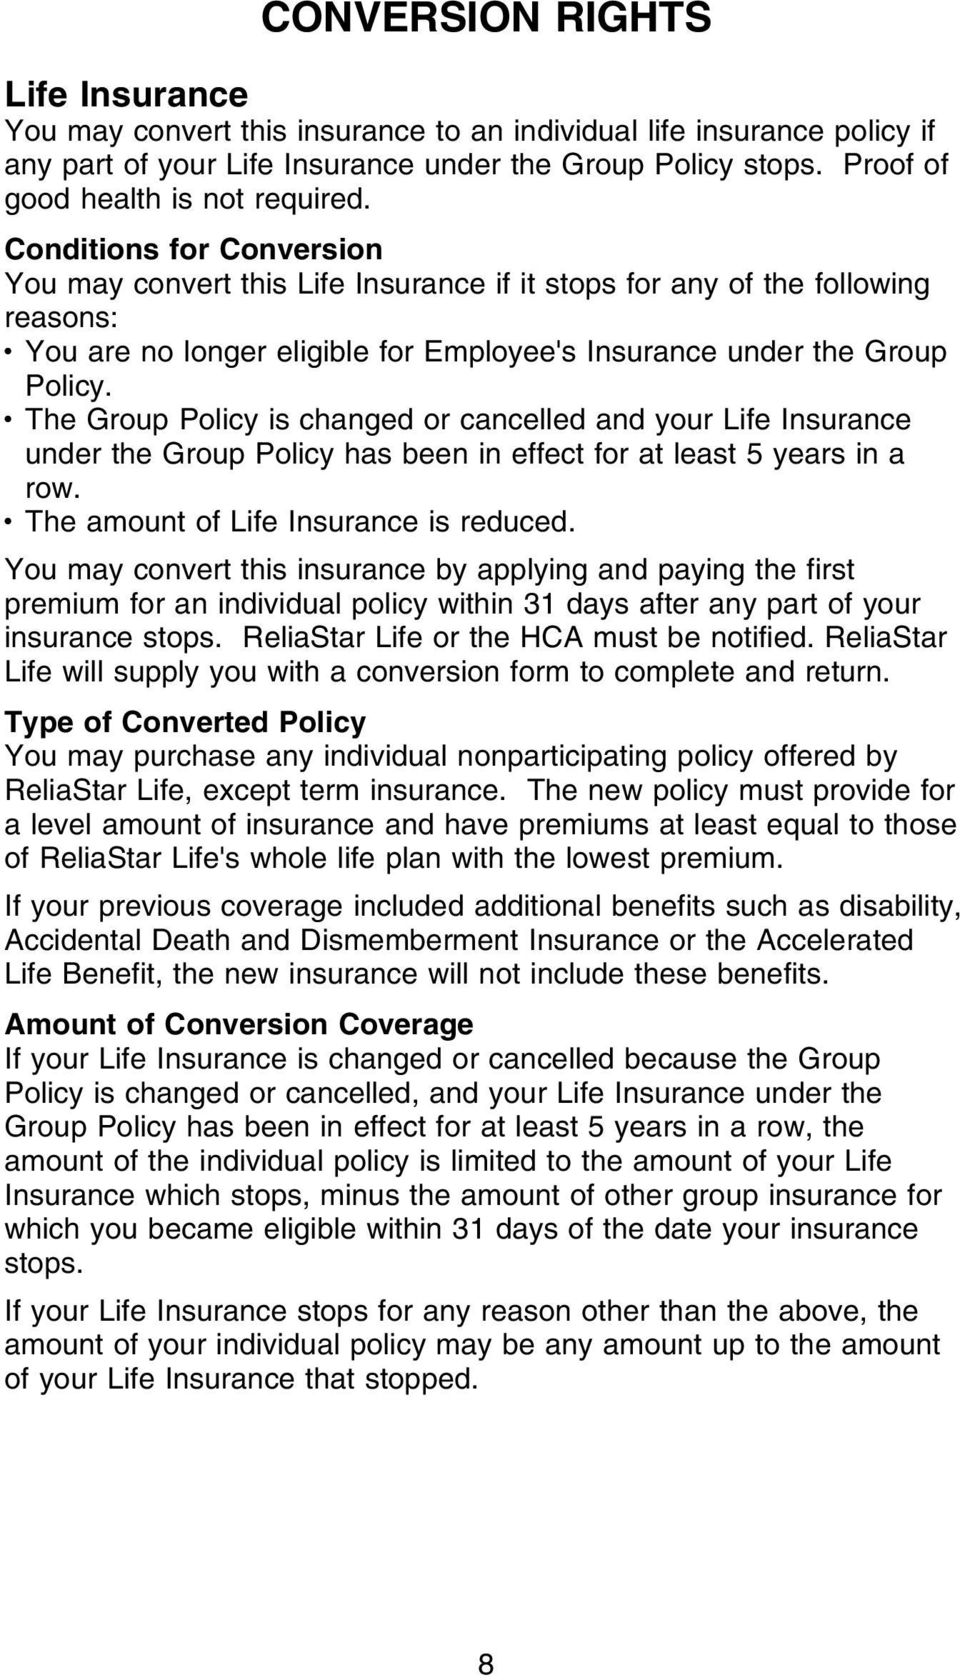 Conditions for Conversion You may convert this Life Insurance if it stops for any of the following reasons: You are no longer eligible for Employee's Insurance under the Group Policy.